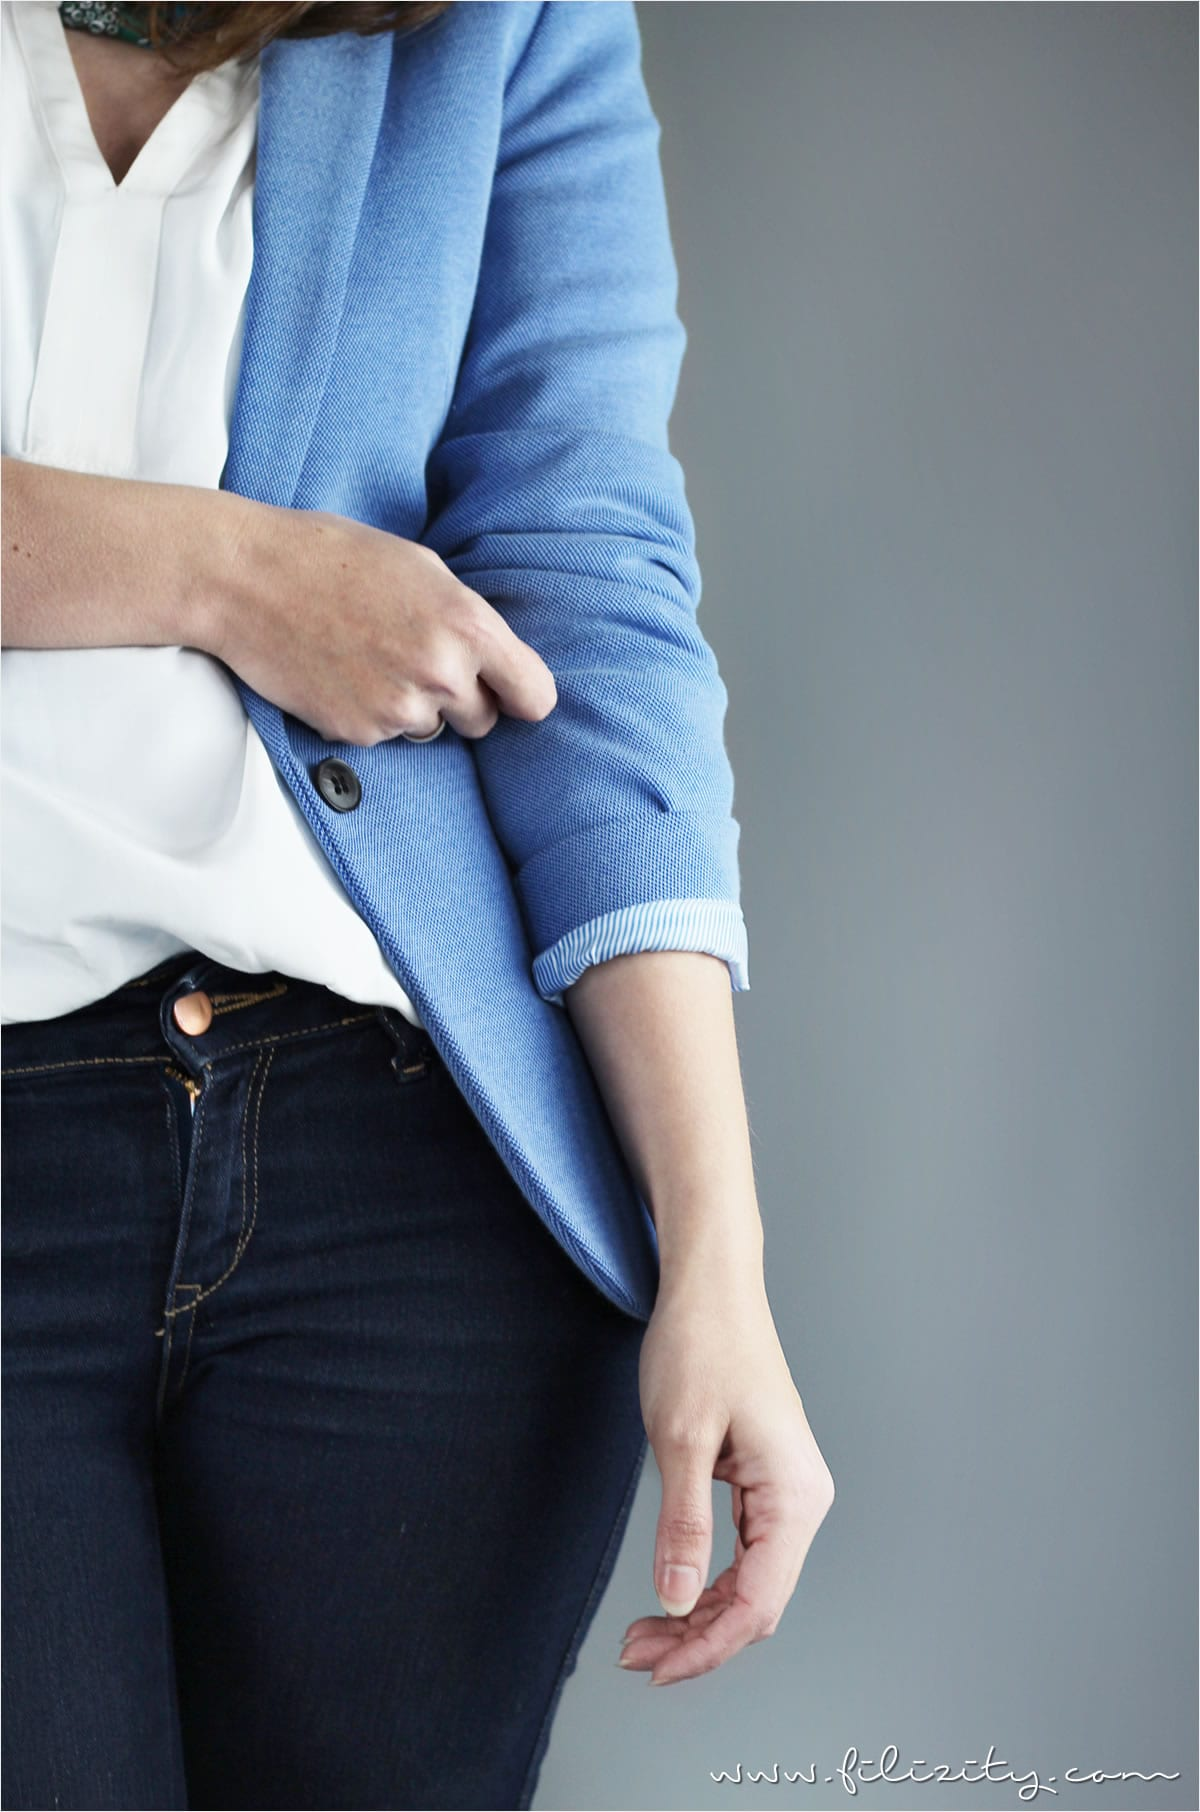 Casual Elegance mit Jeans und Blazer | A Little Fashion | www.a-little-fashion.com/fashion/casual-elegance-jeans-blazer-bluse